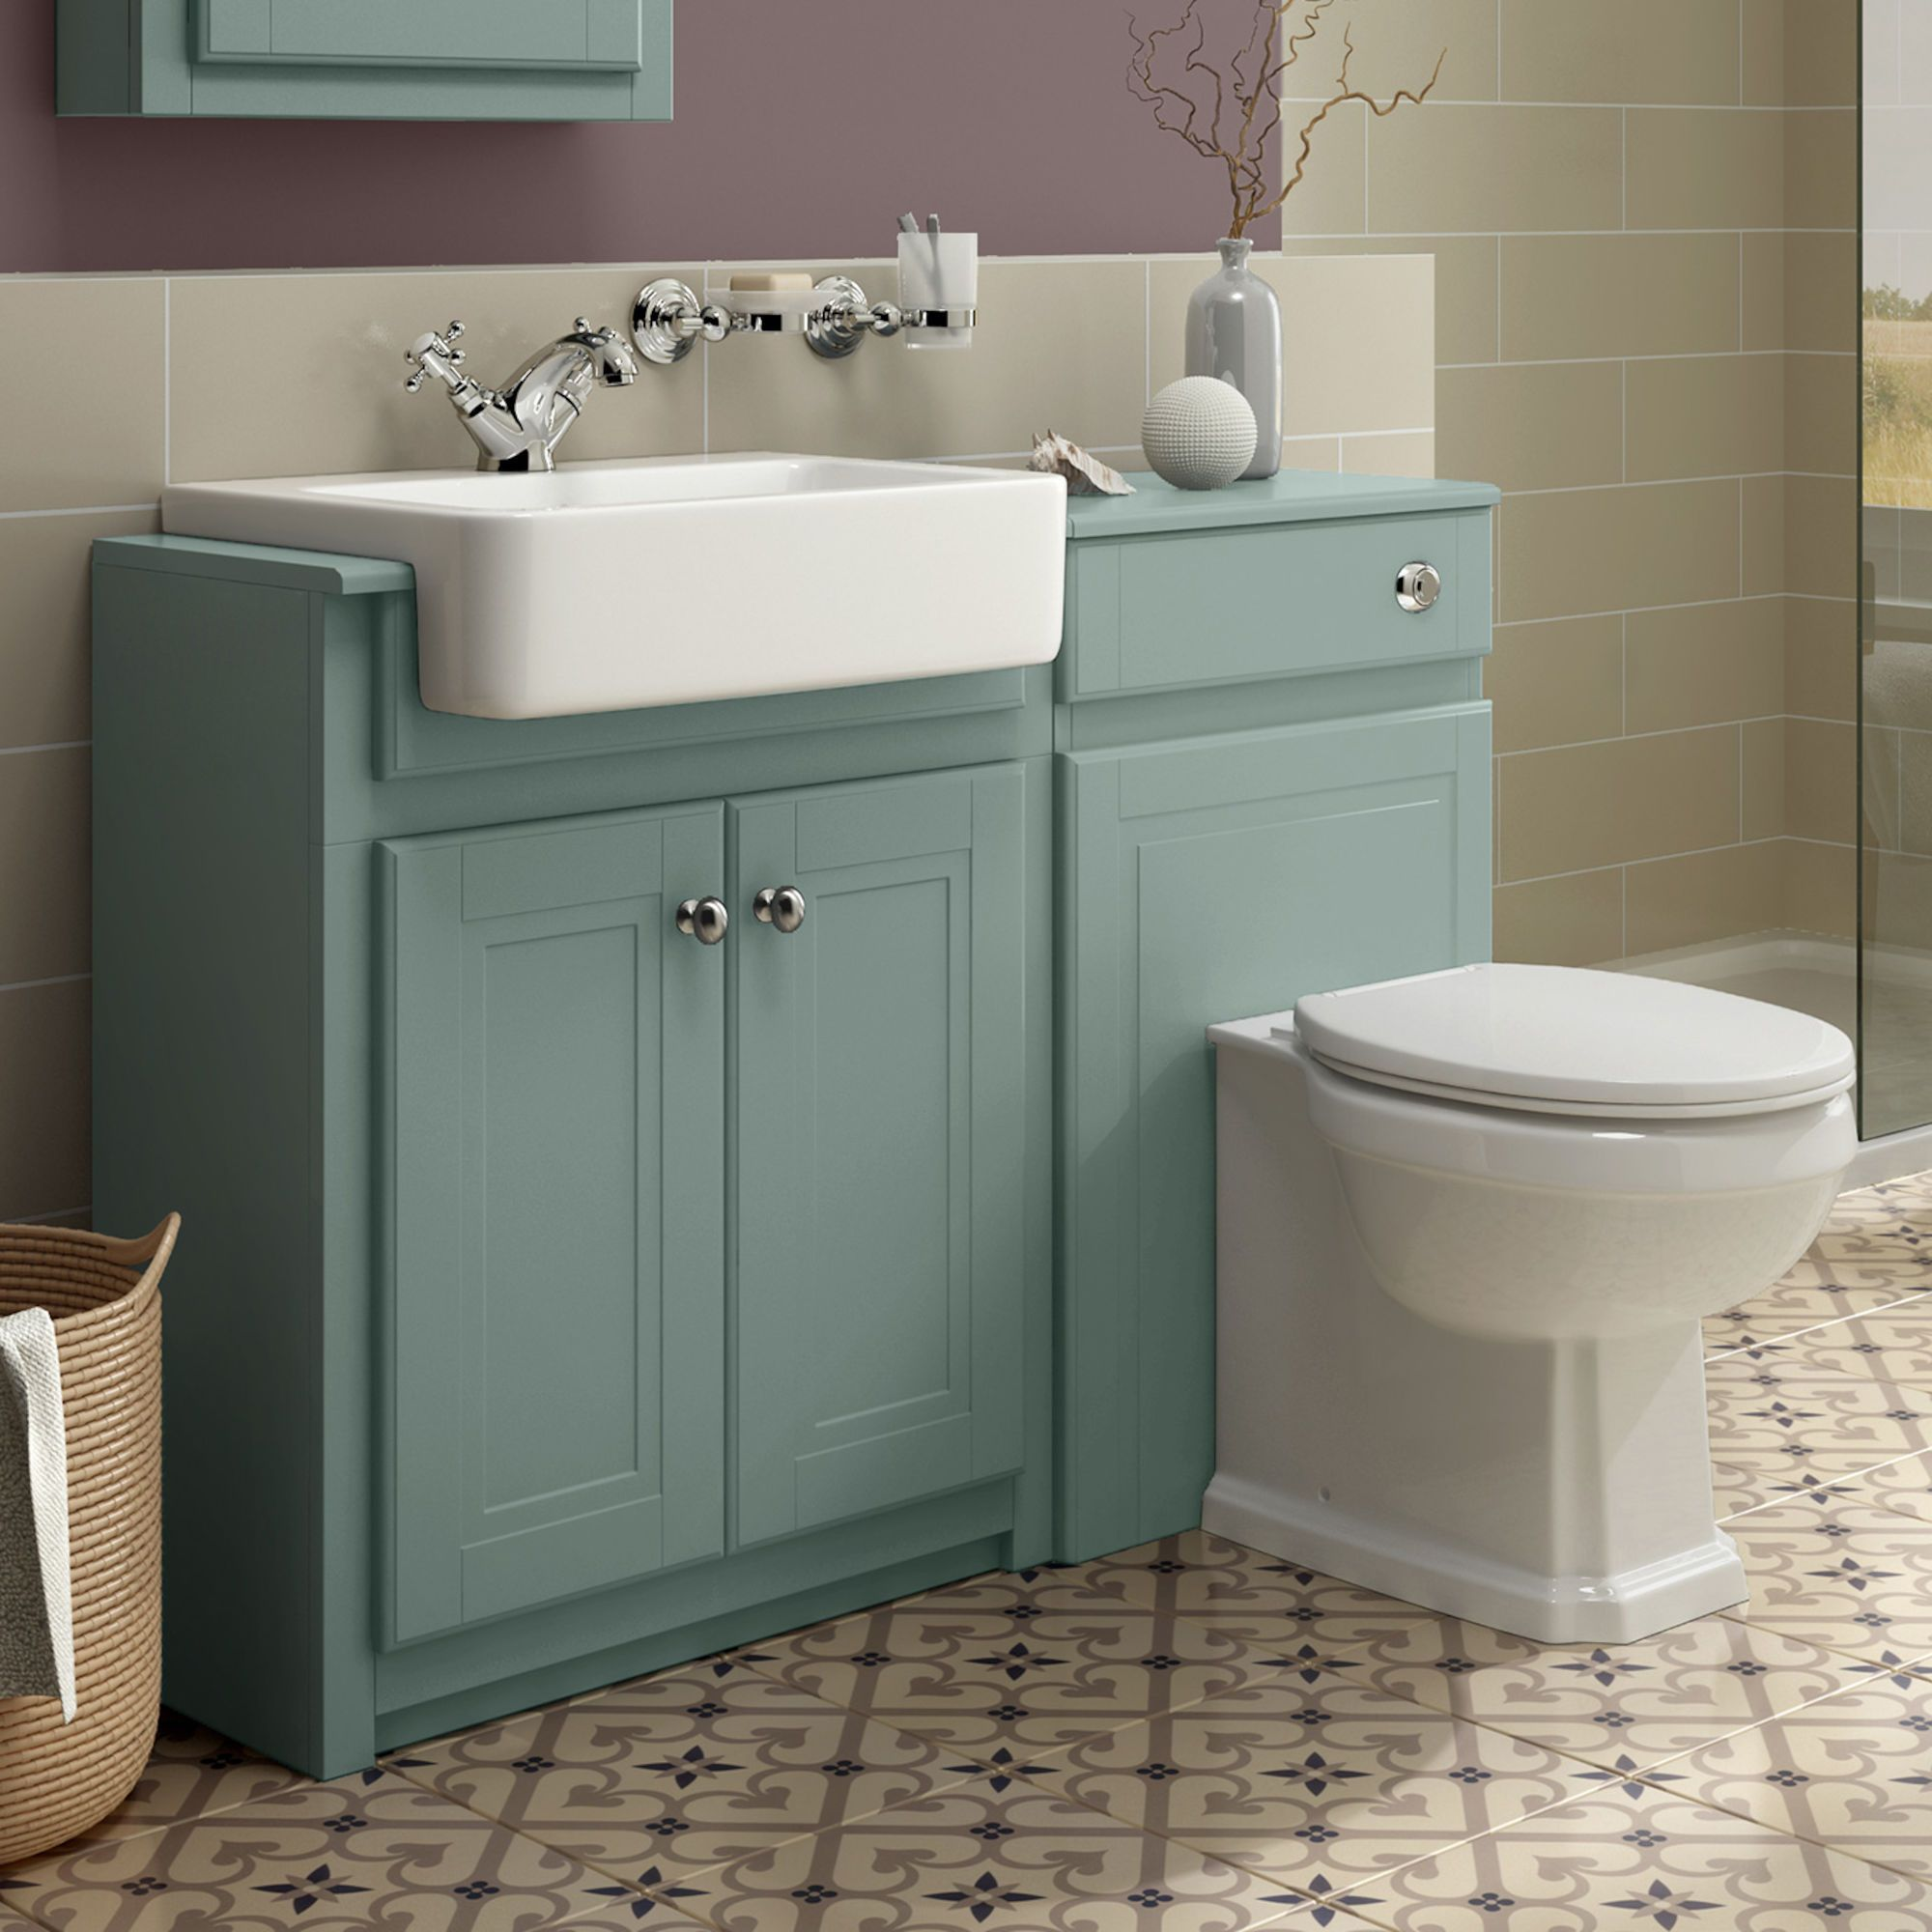 Toilet Sink Combo Decorating Ideas For Bathroom Contemporary Design Ideas Bathroom Furniture Storage Grey Bathroom Furniture Bathroom Sink Units